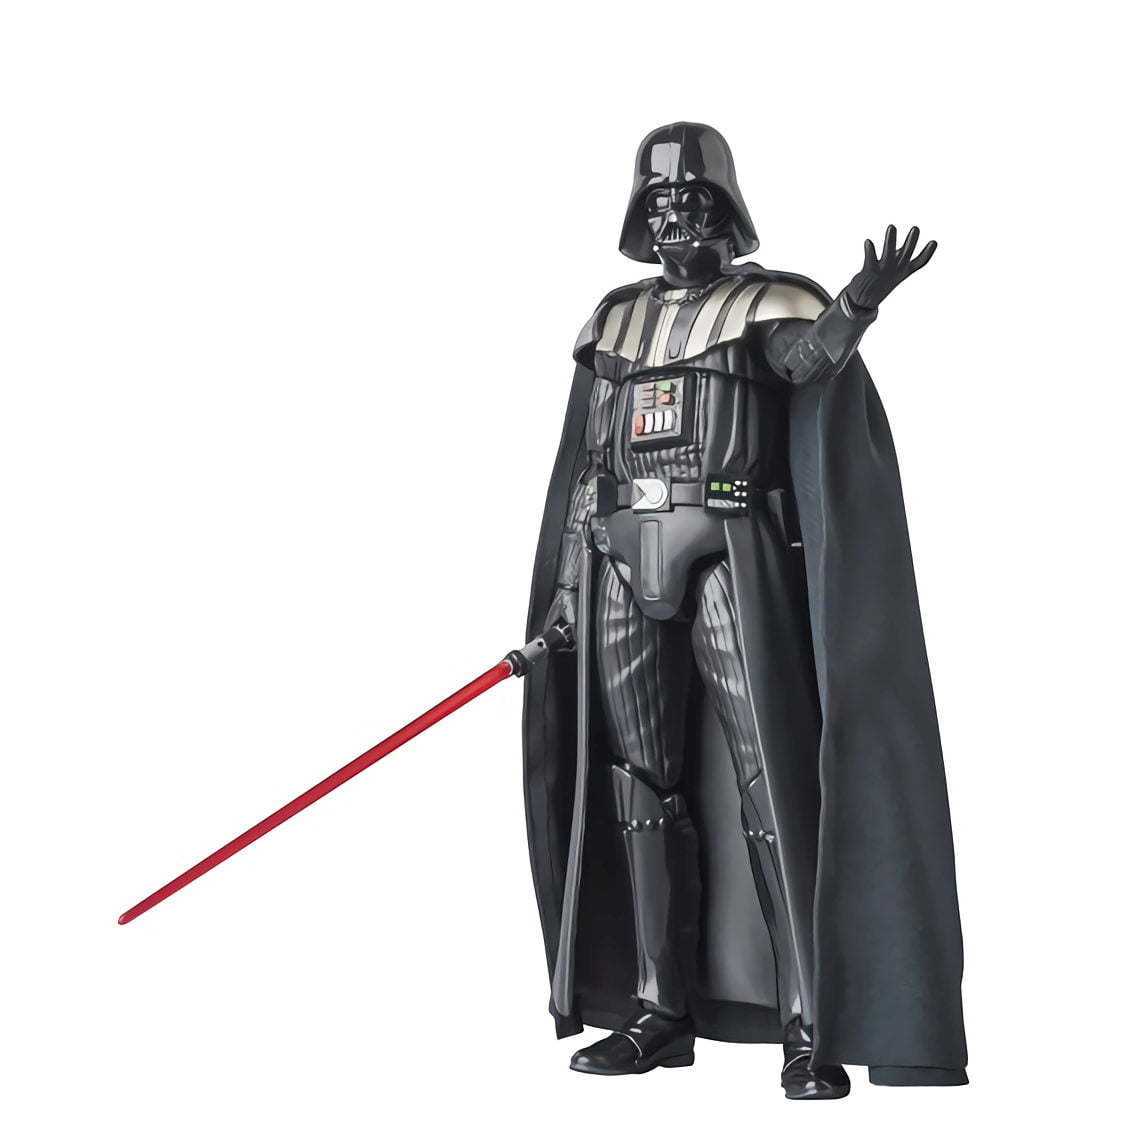 Star Wars Episode Iii Revenge Of The Sith Darth Vader Mafex Pvc Action Figure Walmart Com Walmart Com